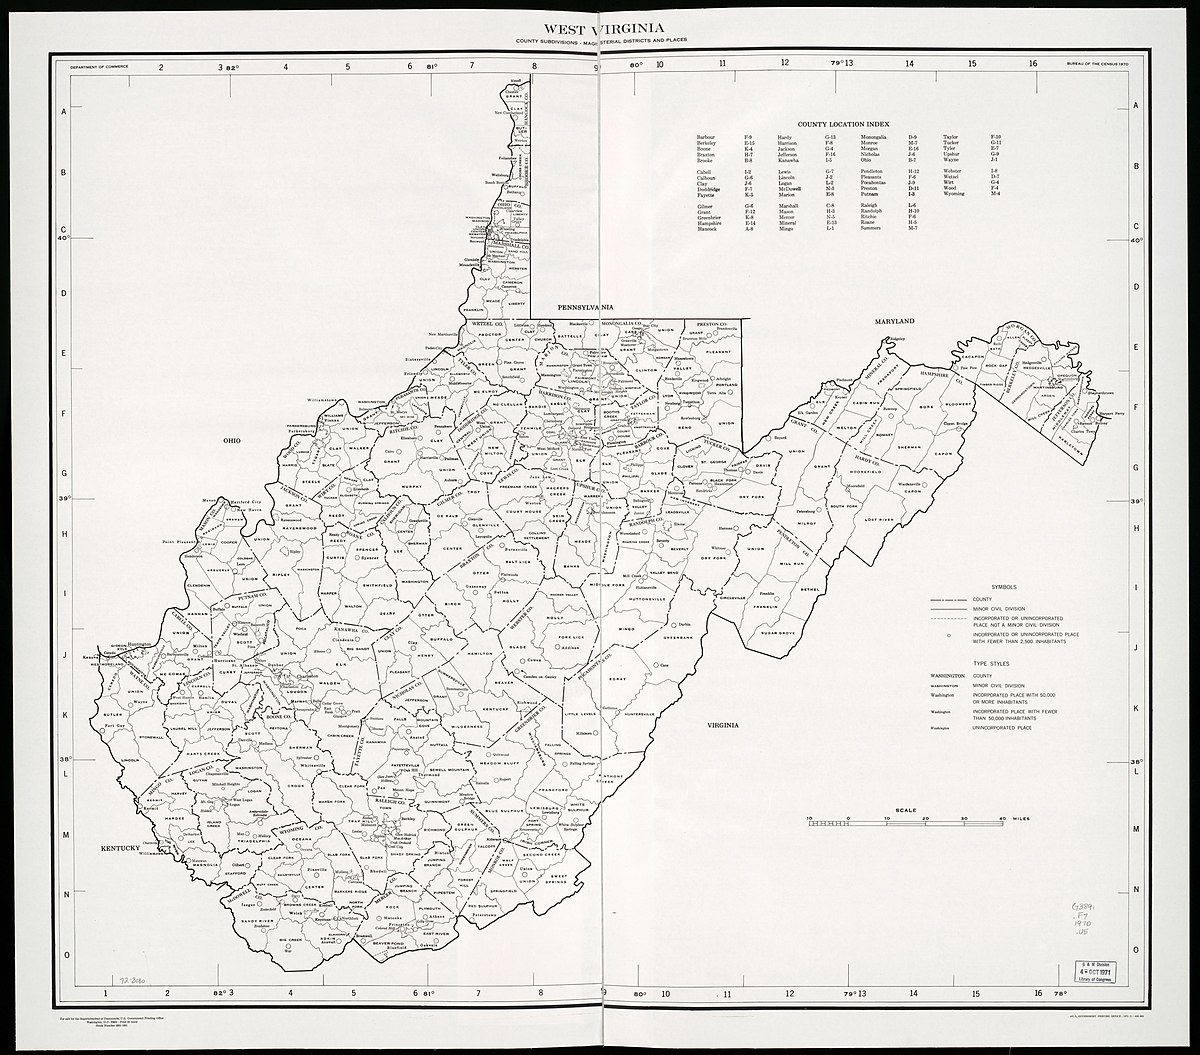 Taxes In Virginia >> List of magisterial districts in West Virginia - Wikipedia